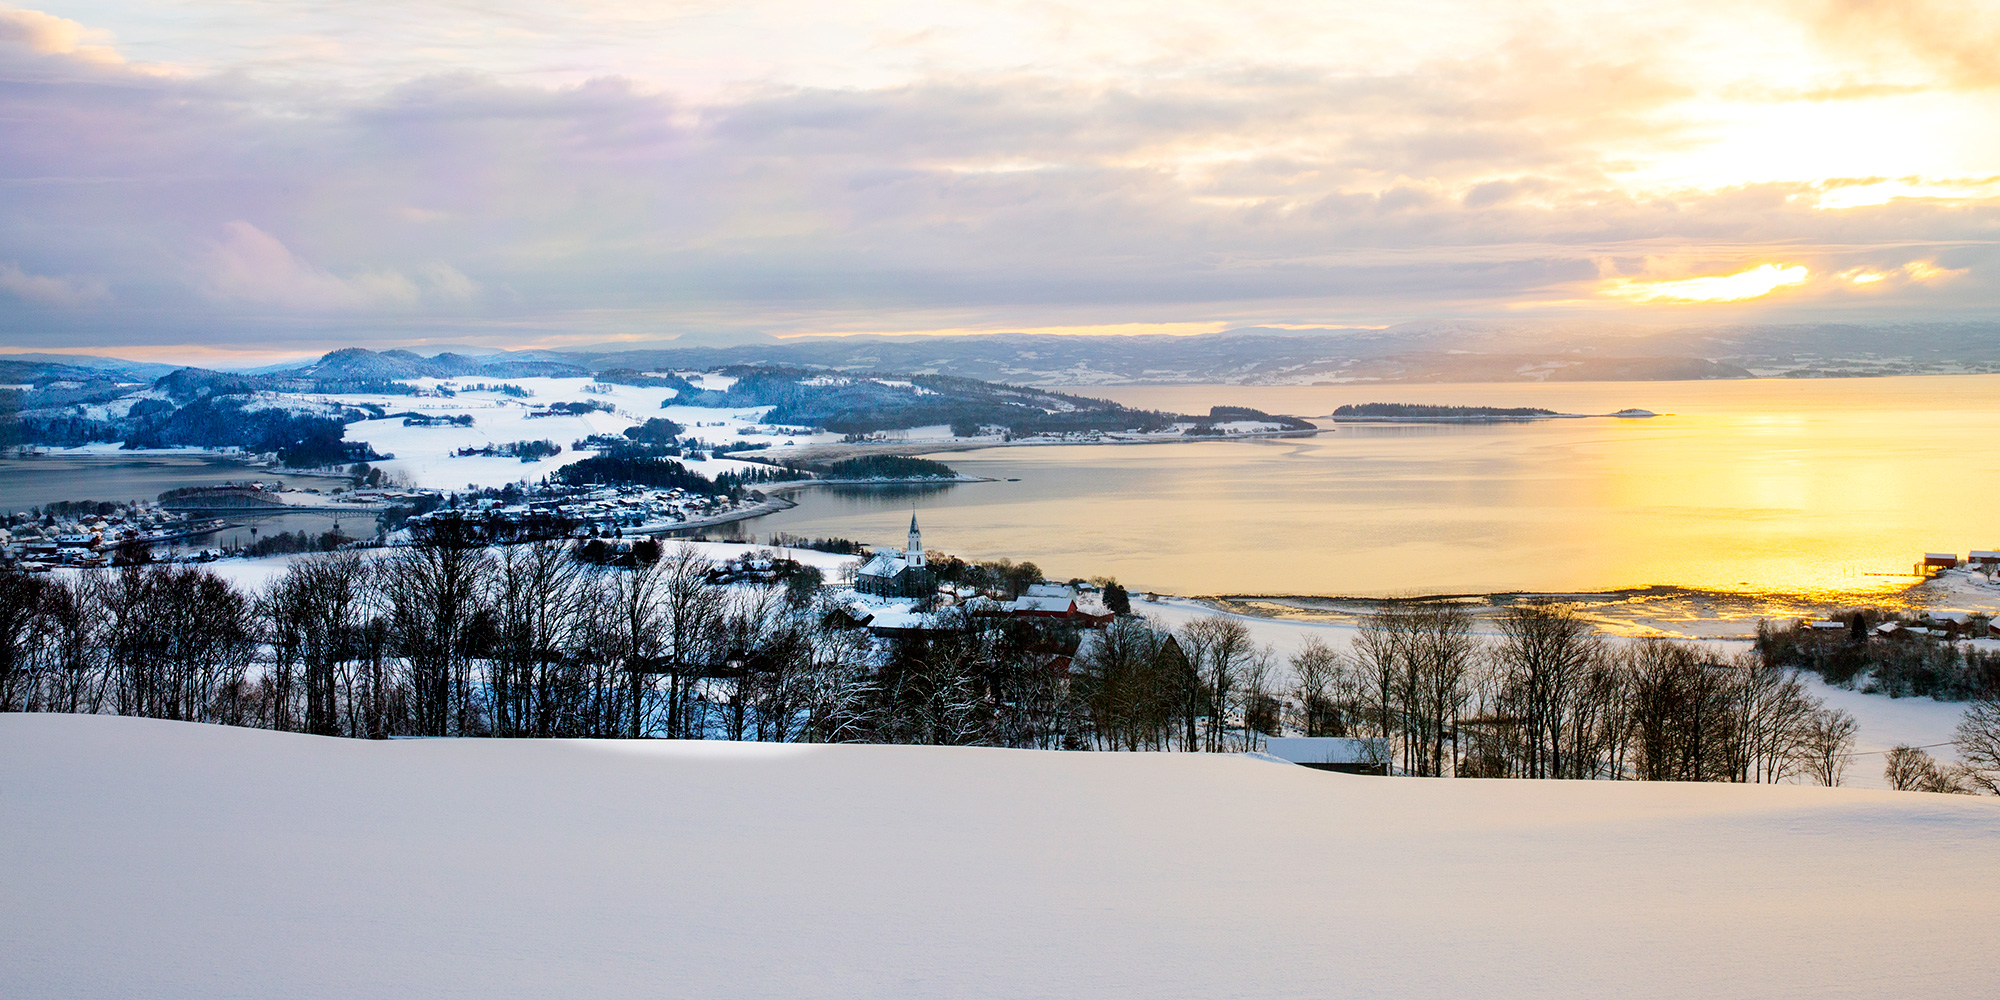 The view from Husfrua Country Farm Hotel in Winter. Photo: Lena Johnsen. Copyright: Den Gyldne Omvei